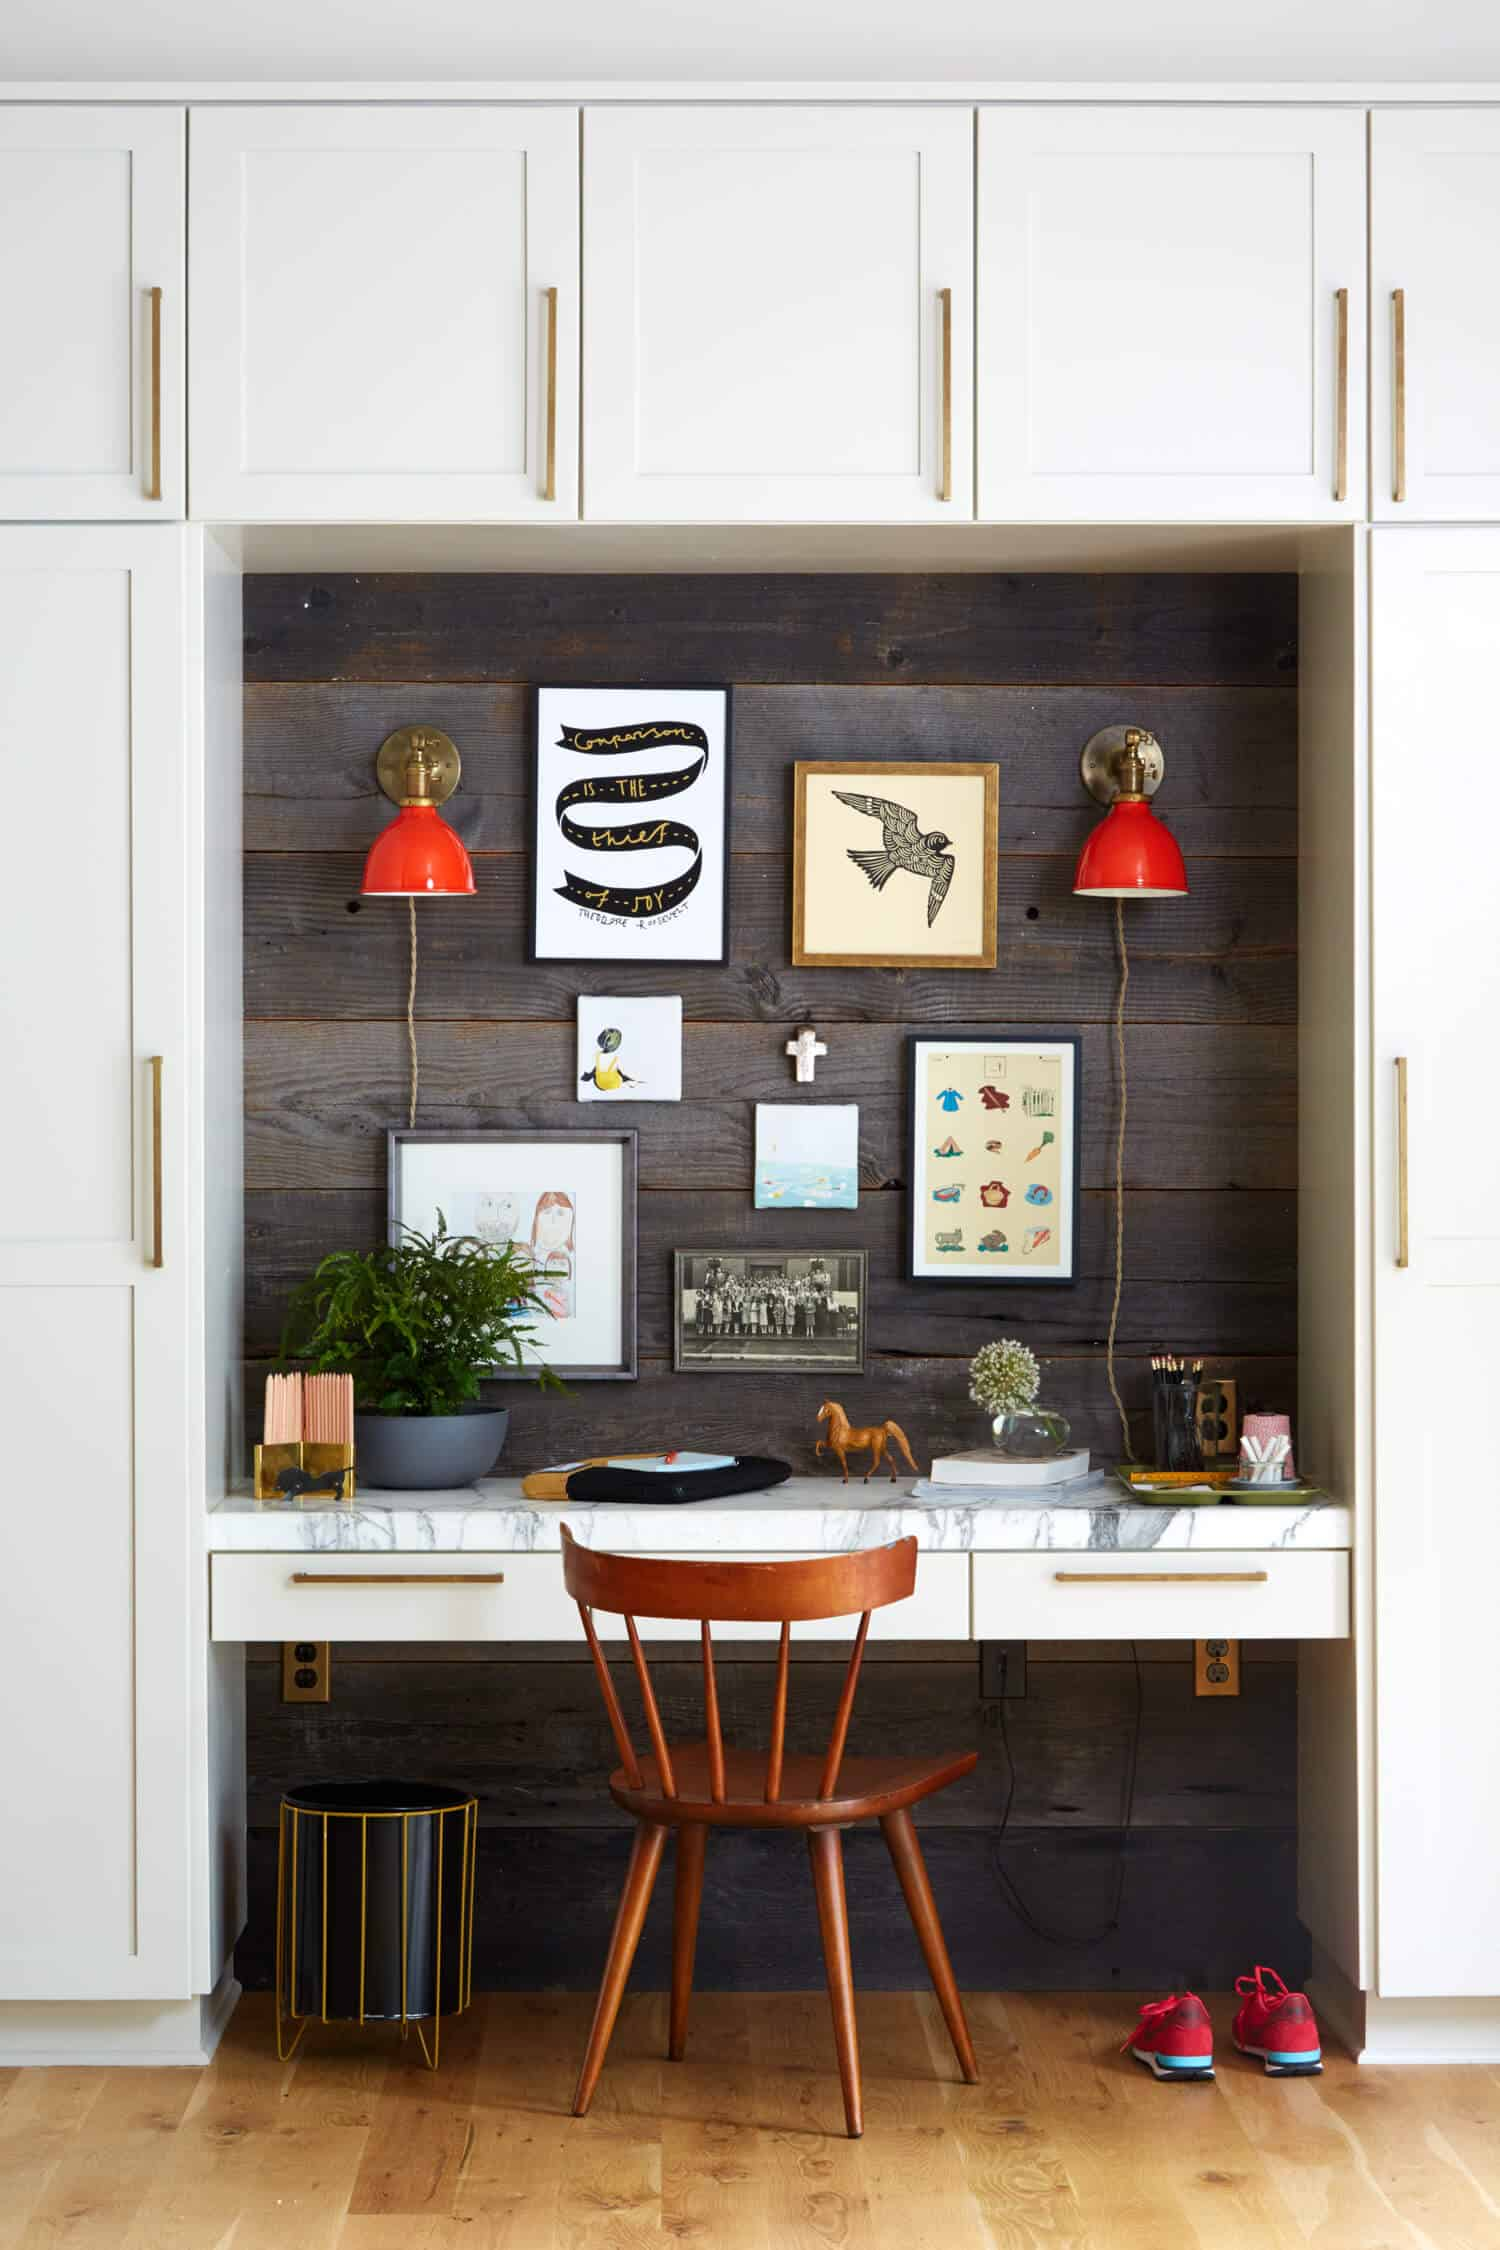 Small Home Office Ideas That Will Make You Want to Work Overtime, modern home office ideas #modernhomeoffice #builtinworkspace #smallhomeofficeinspiration #deskdecorinspiration